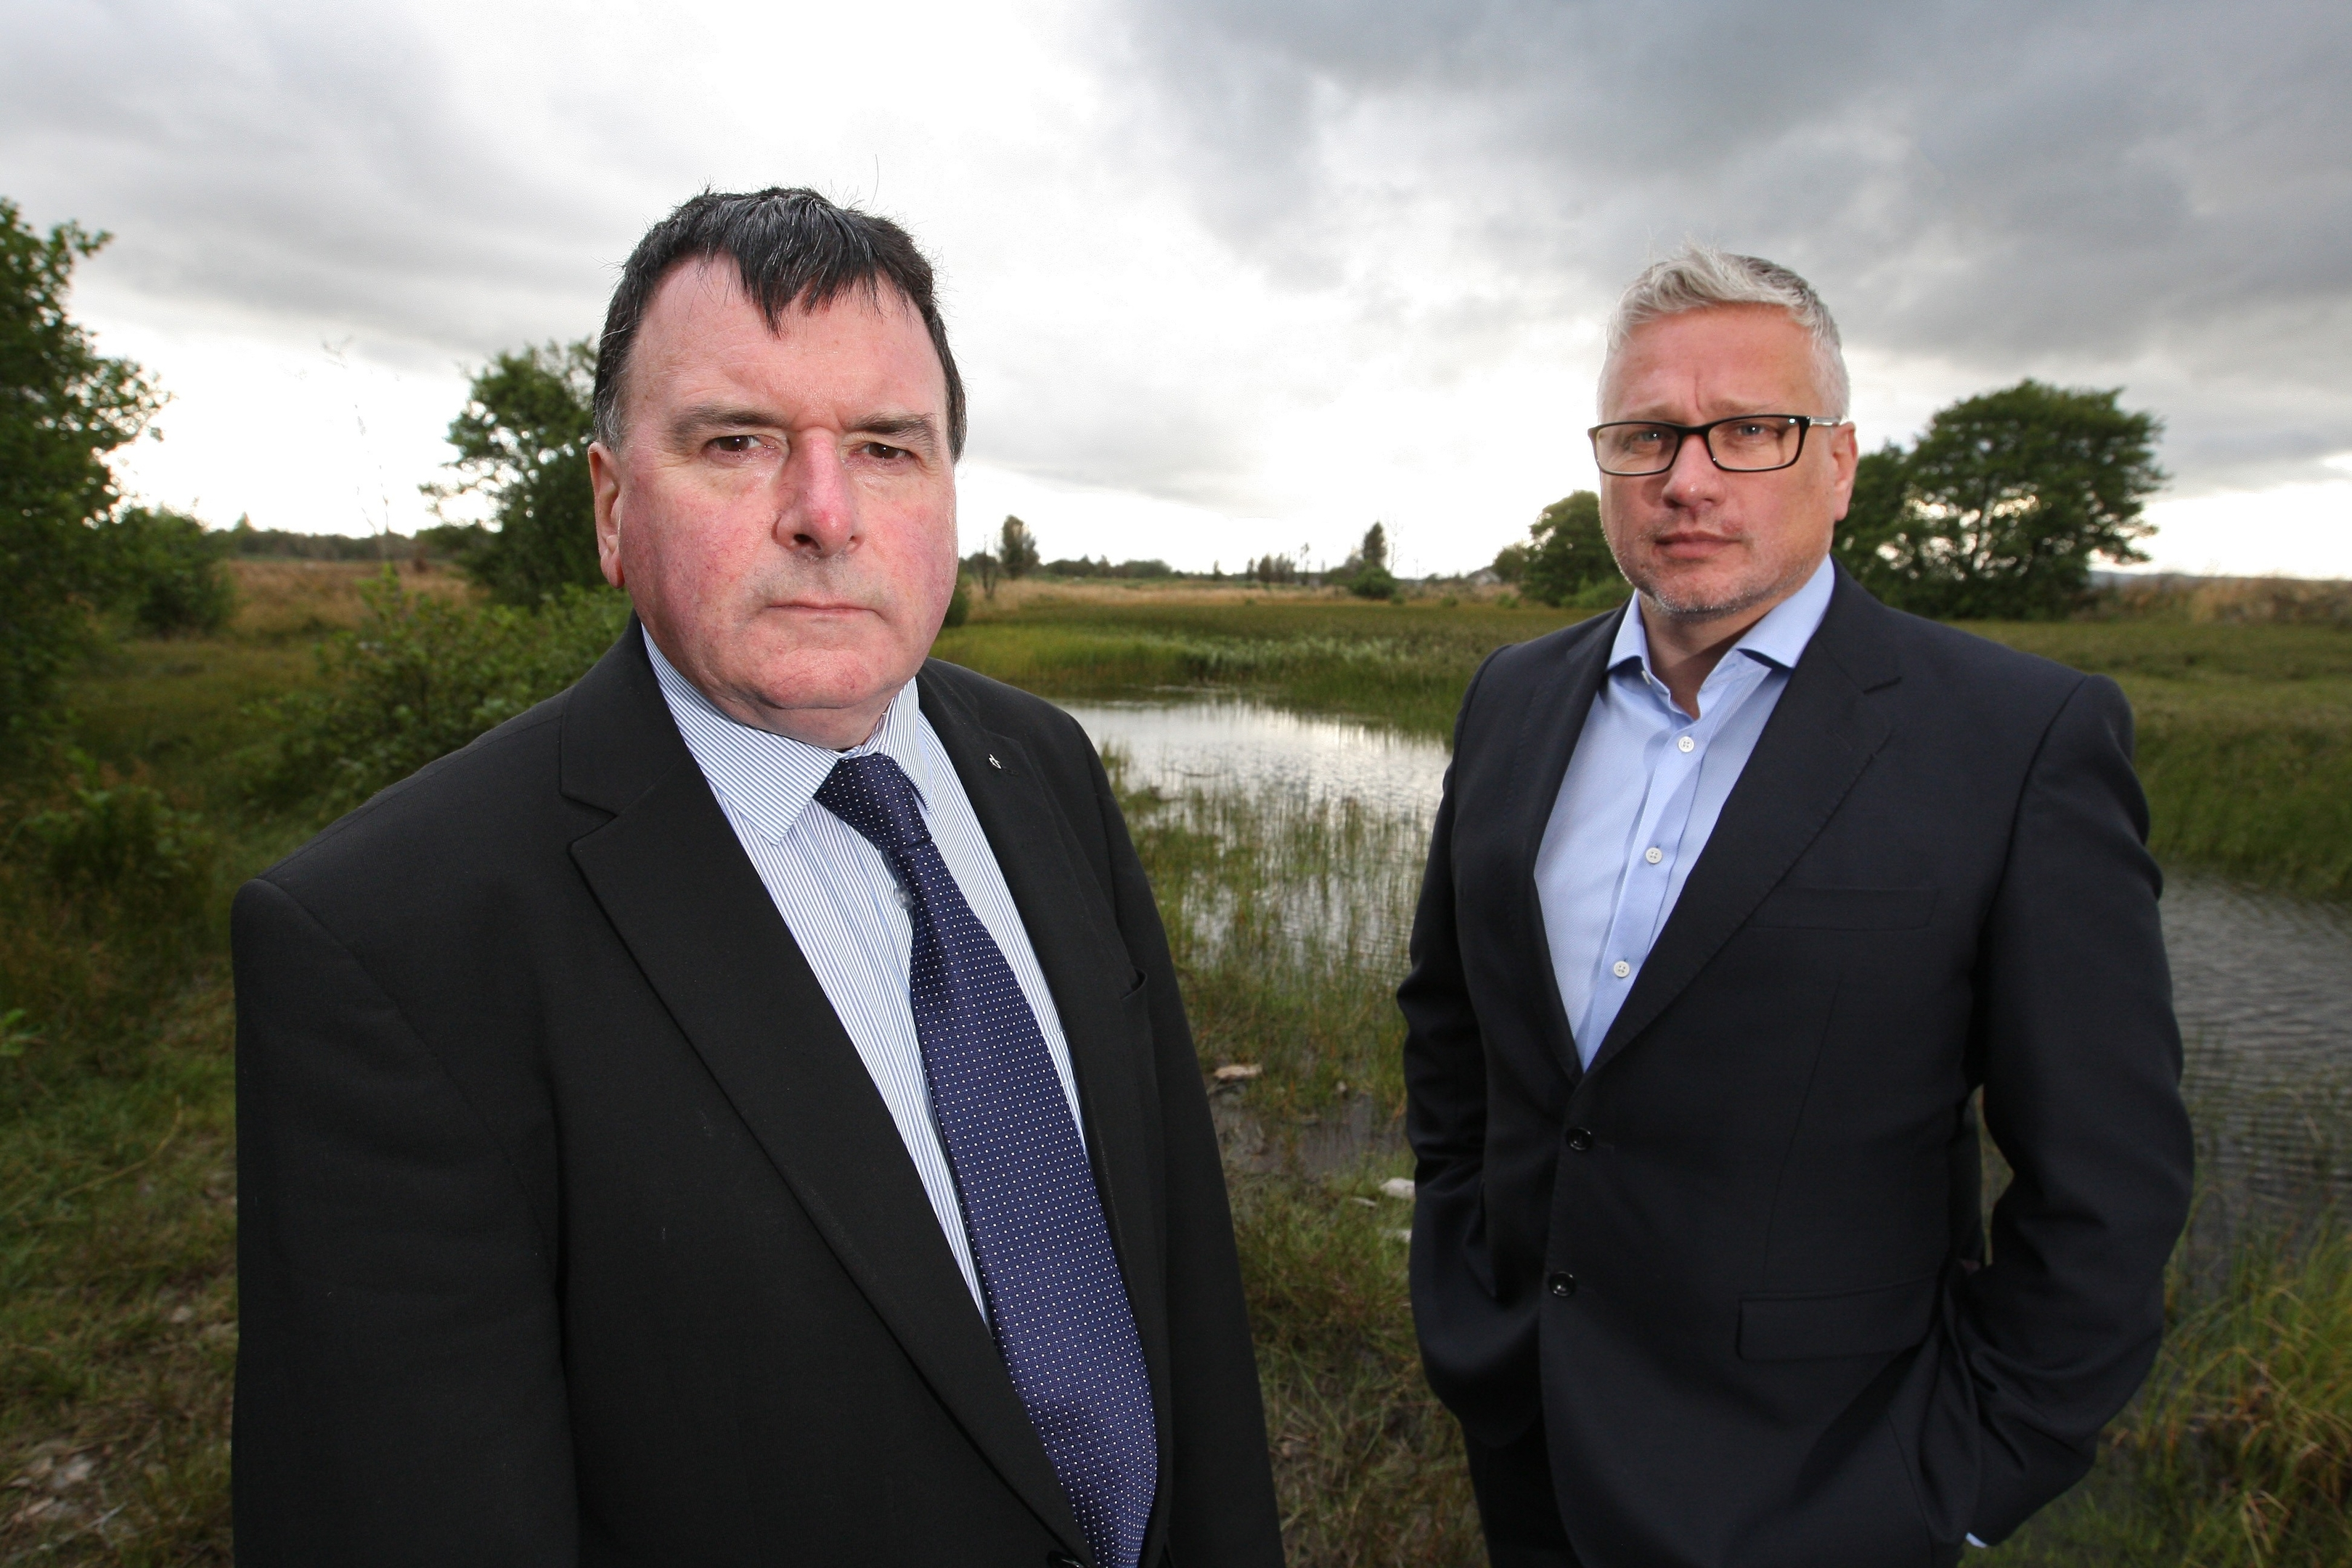 George Moodie (right), pictured with local councillor Ken Gowans at the site.